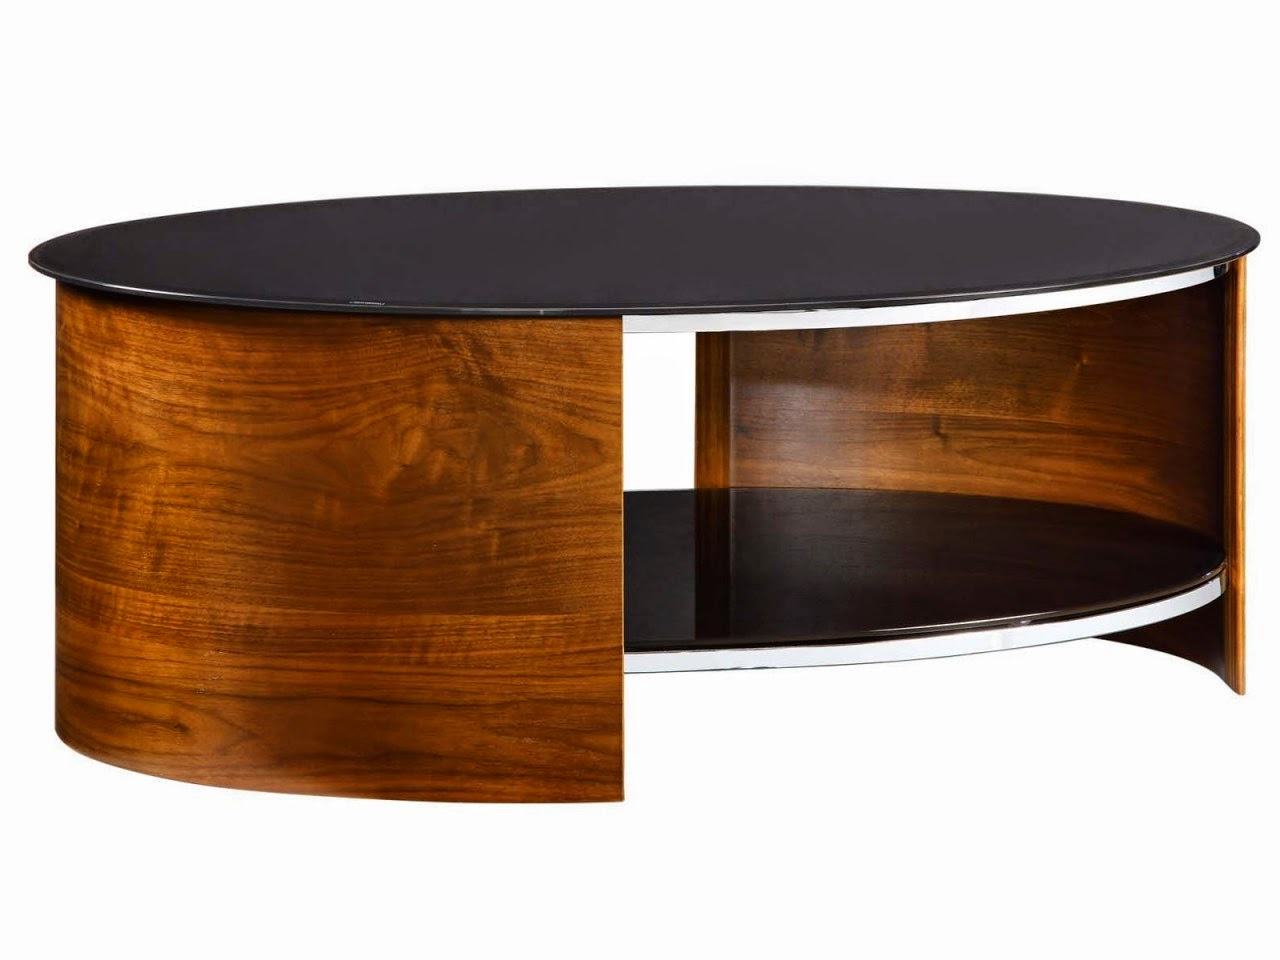 oval black top cherry wood coffee tables for sale